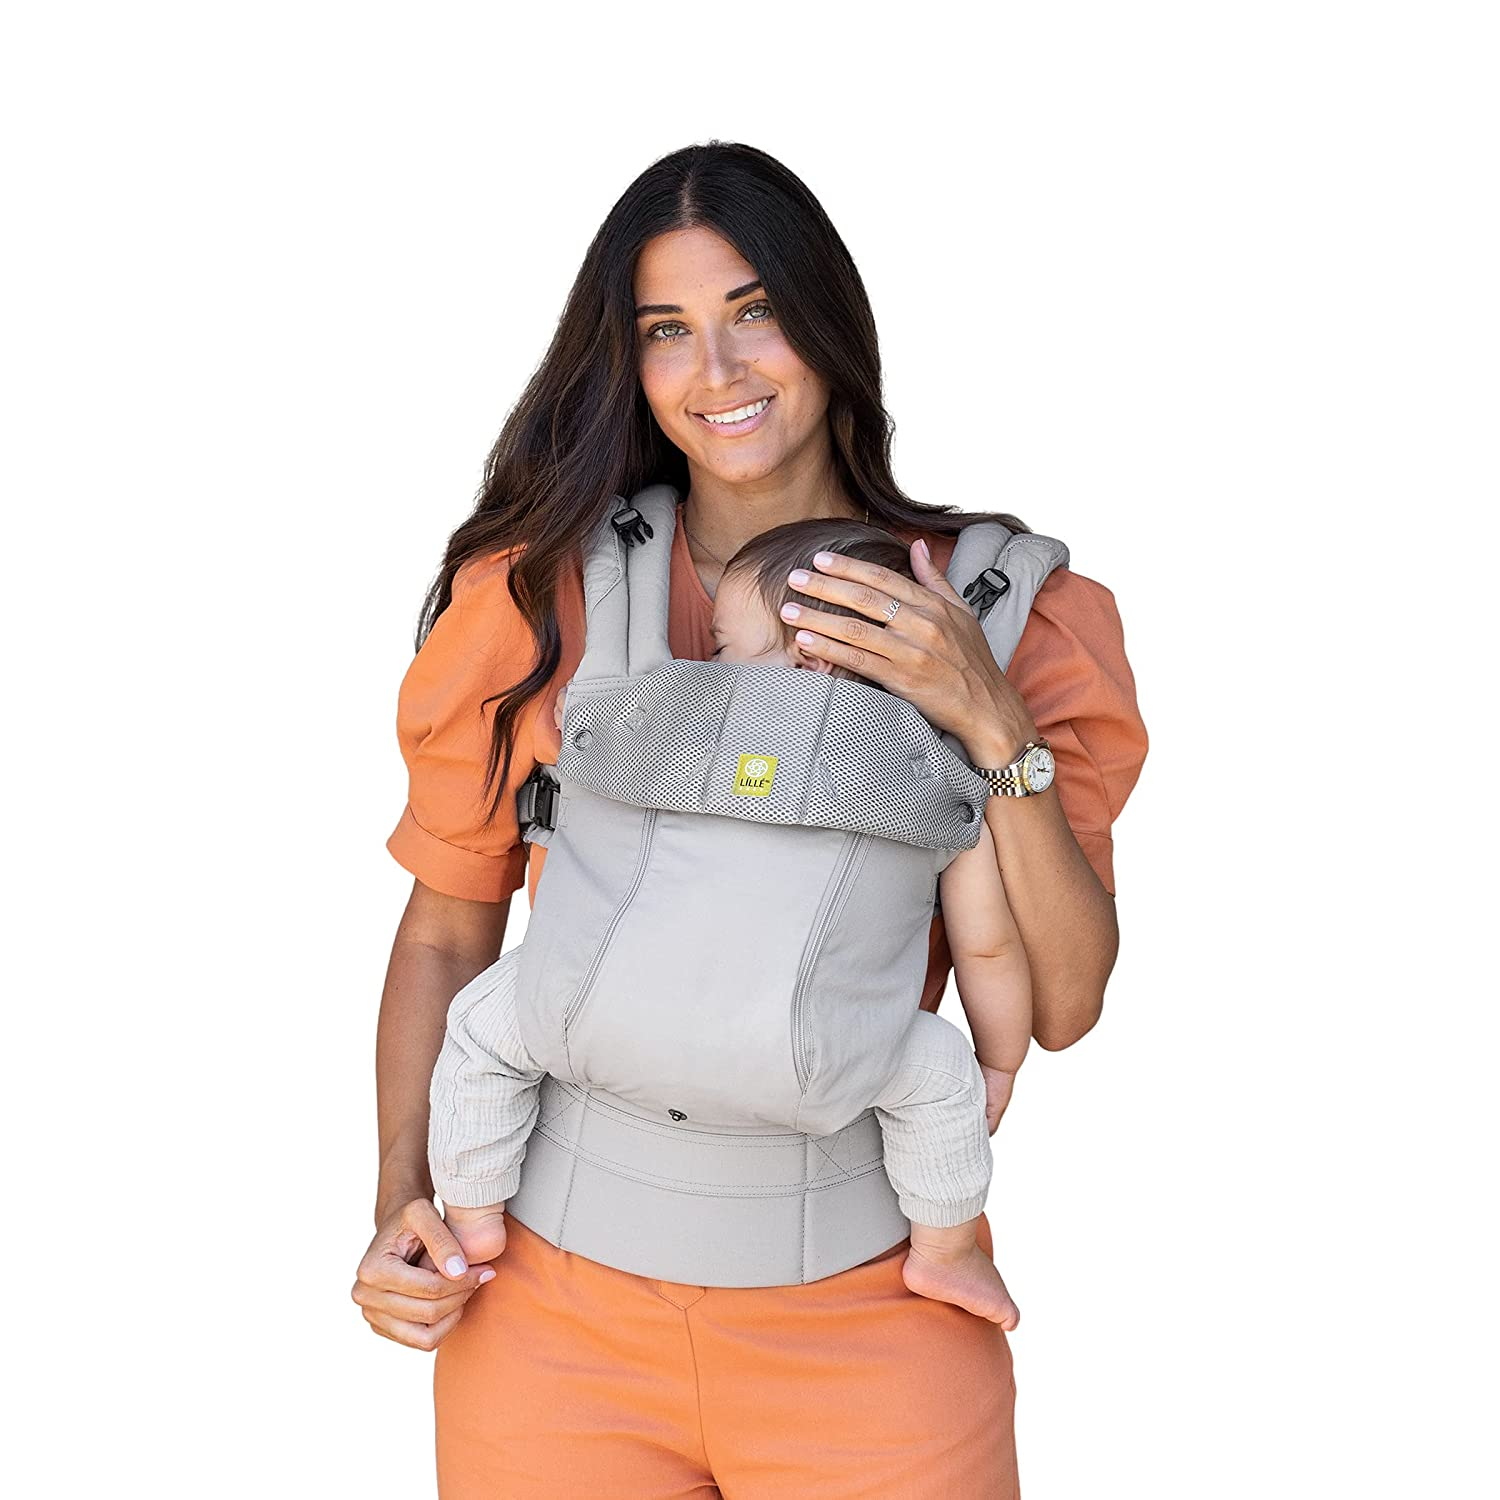 LÍLLÉbaby Complete All Seasons Ergonomic Six-Position Baby Carrier with Lumbar Support, Stone